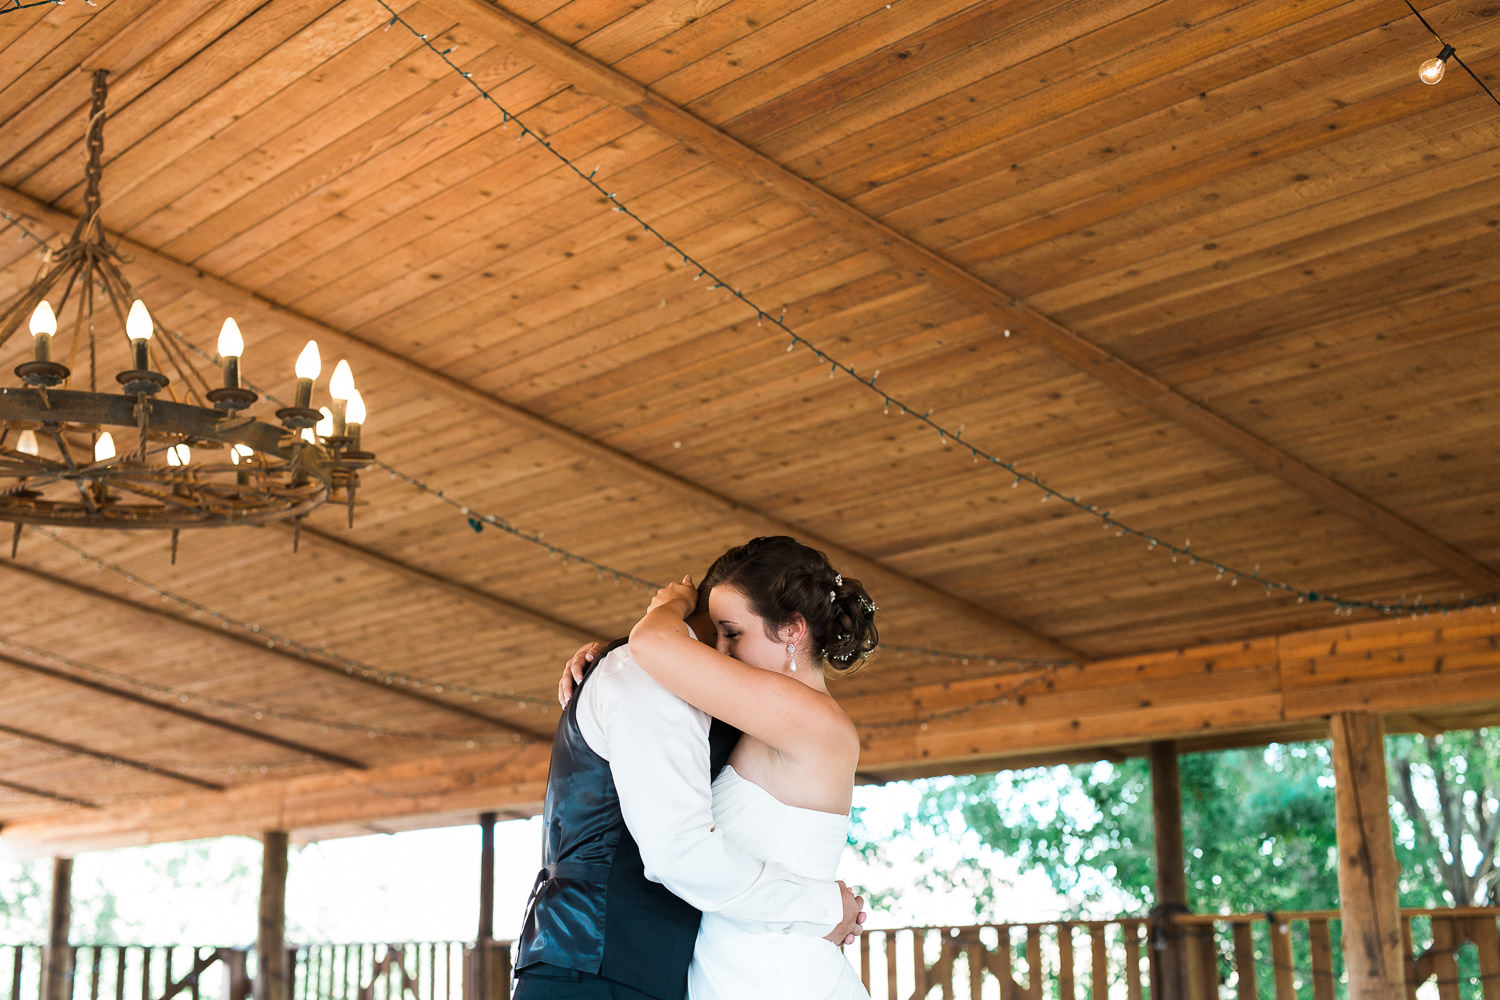 Bride and Groom embrace after first look during adventure wedding in St. George, Utah